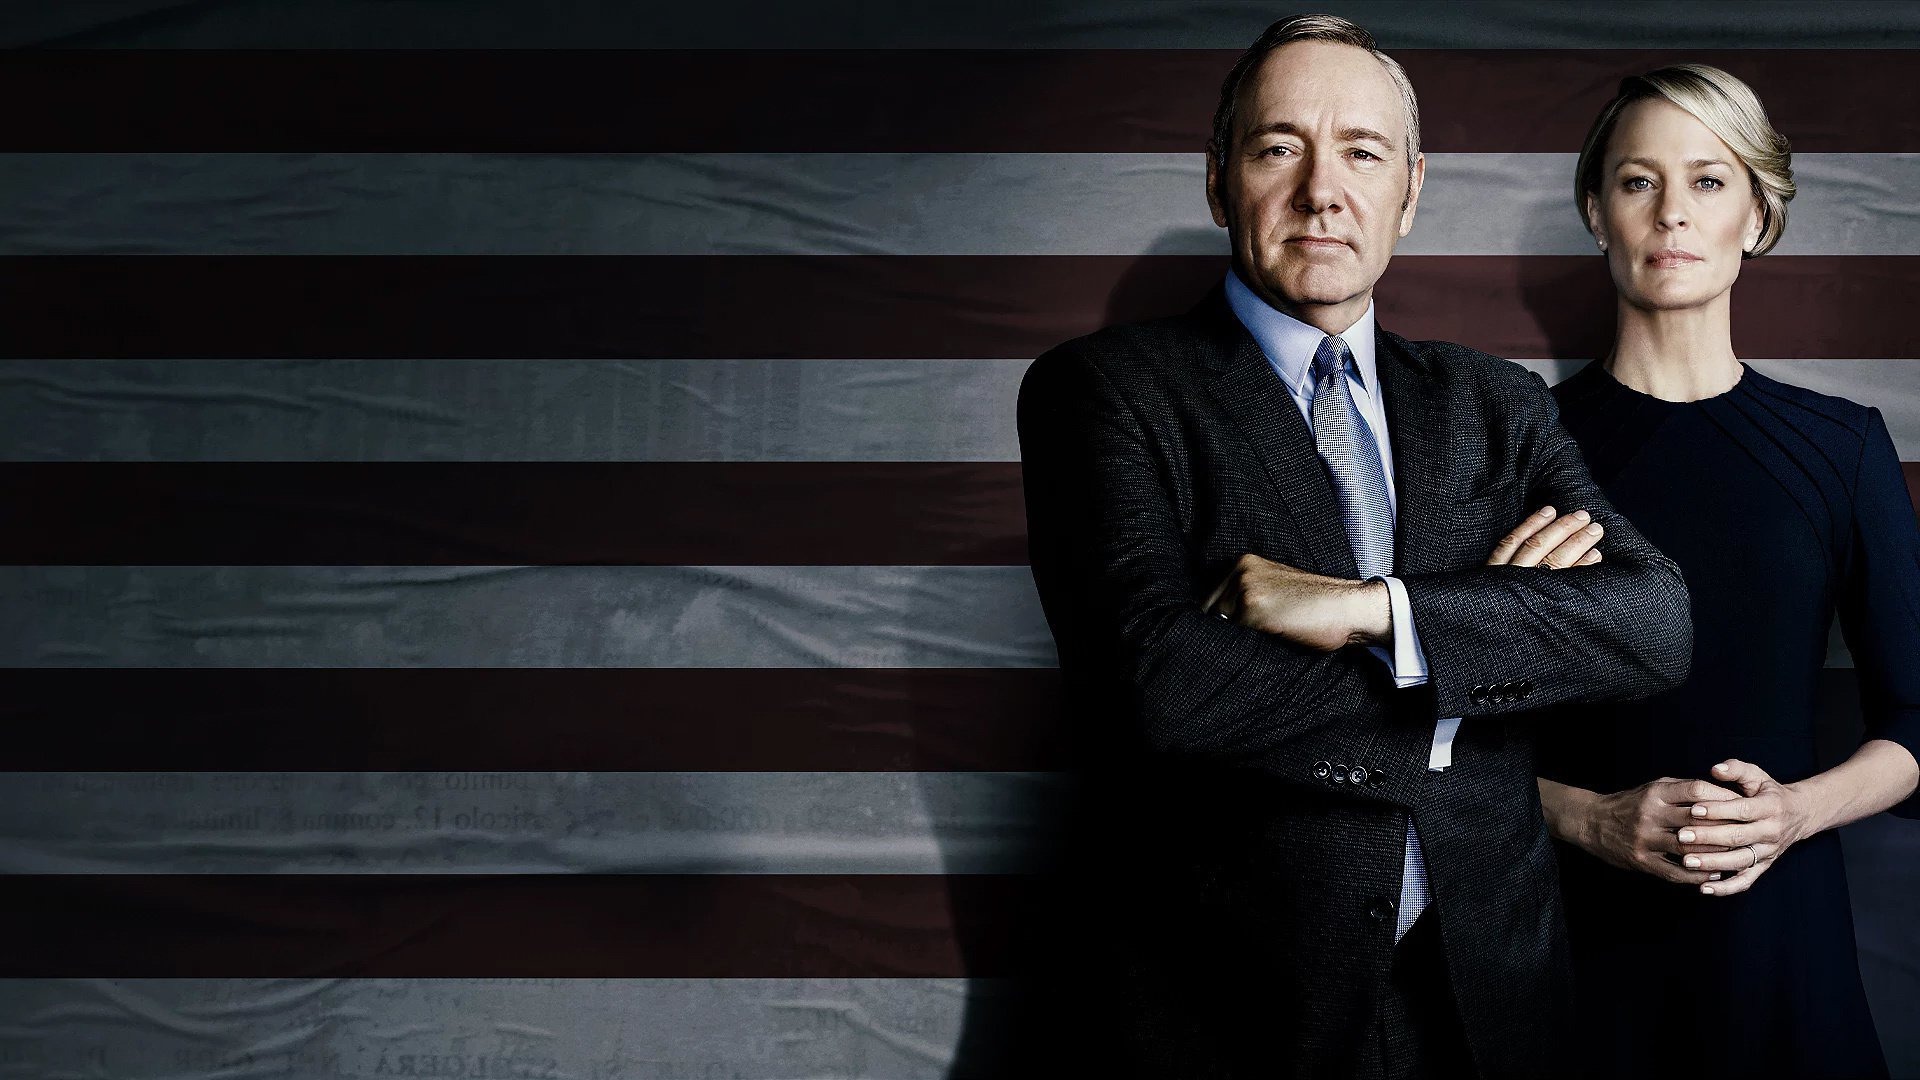 Free House Of Cards High Quality Wallpaper Id 185608 For 1080p Desktop